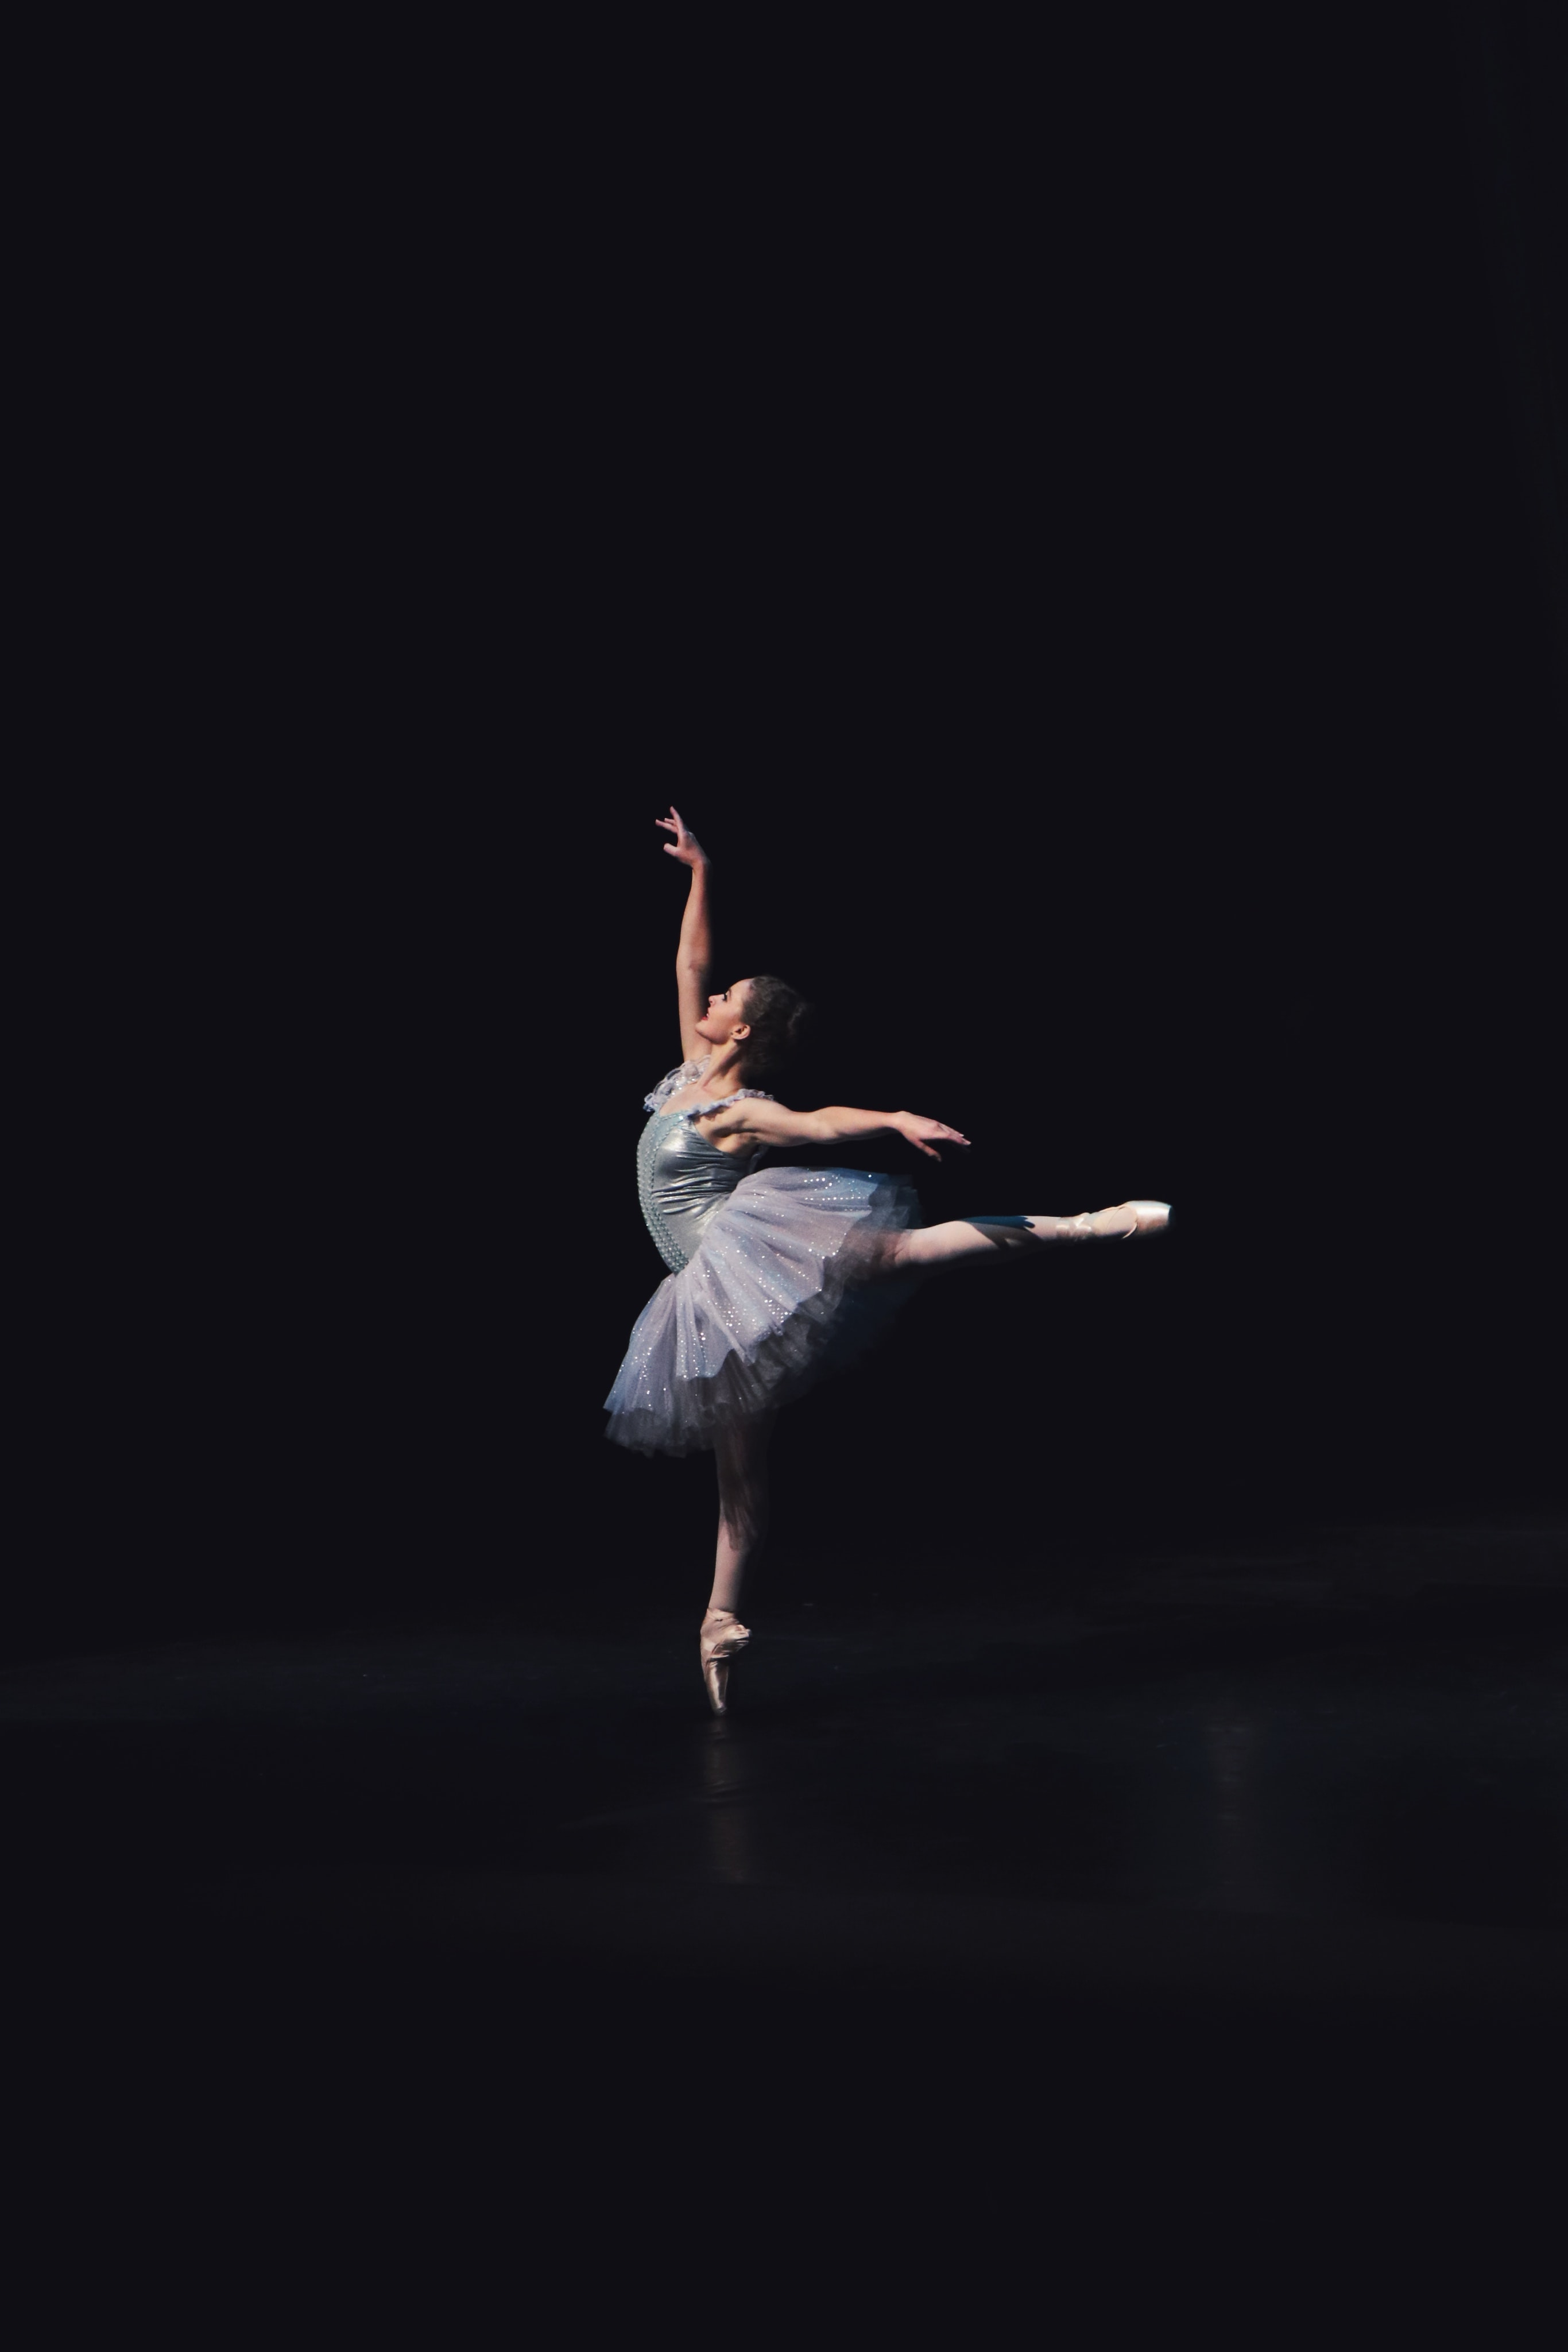 photography of dancing ballerina